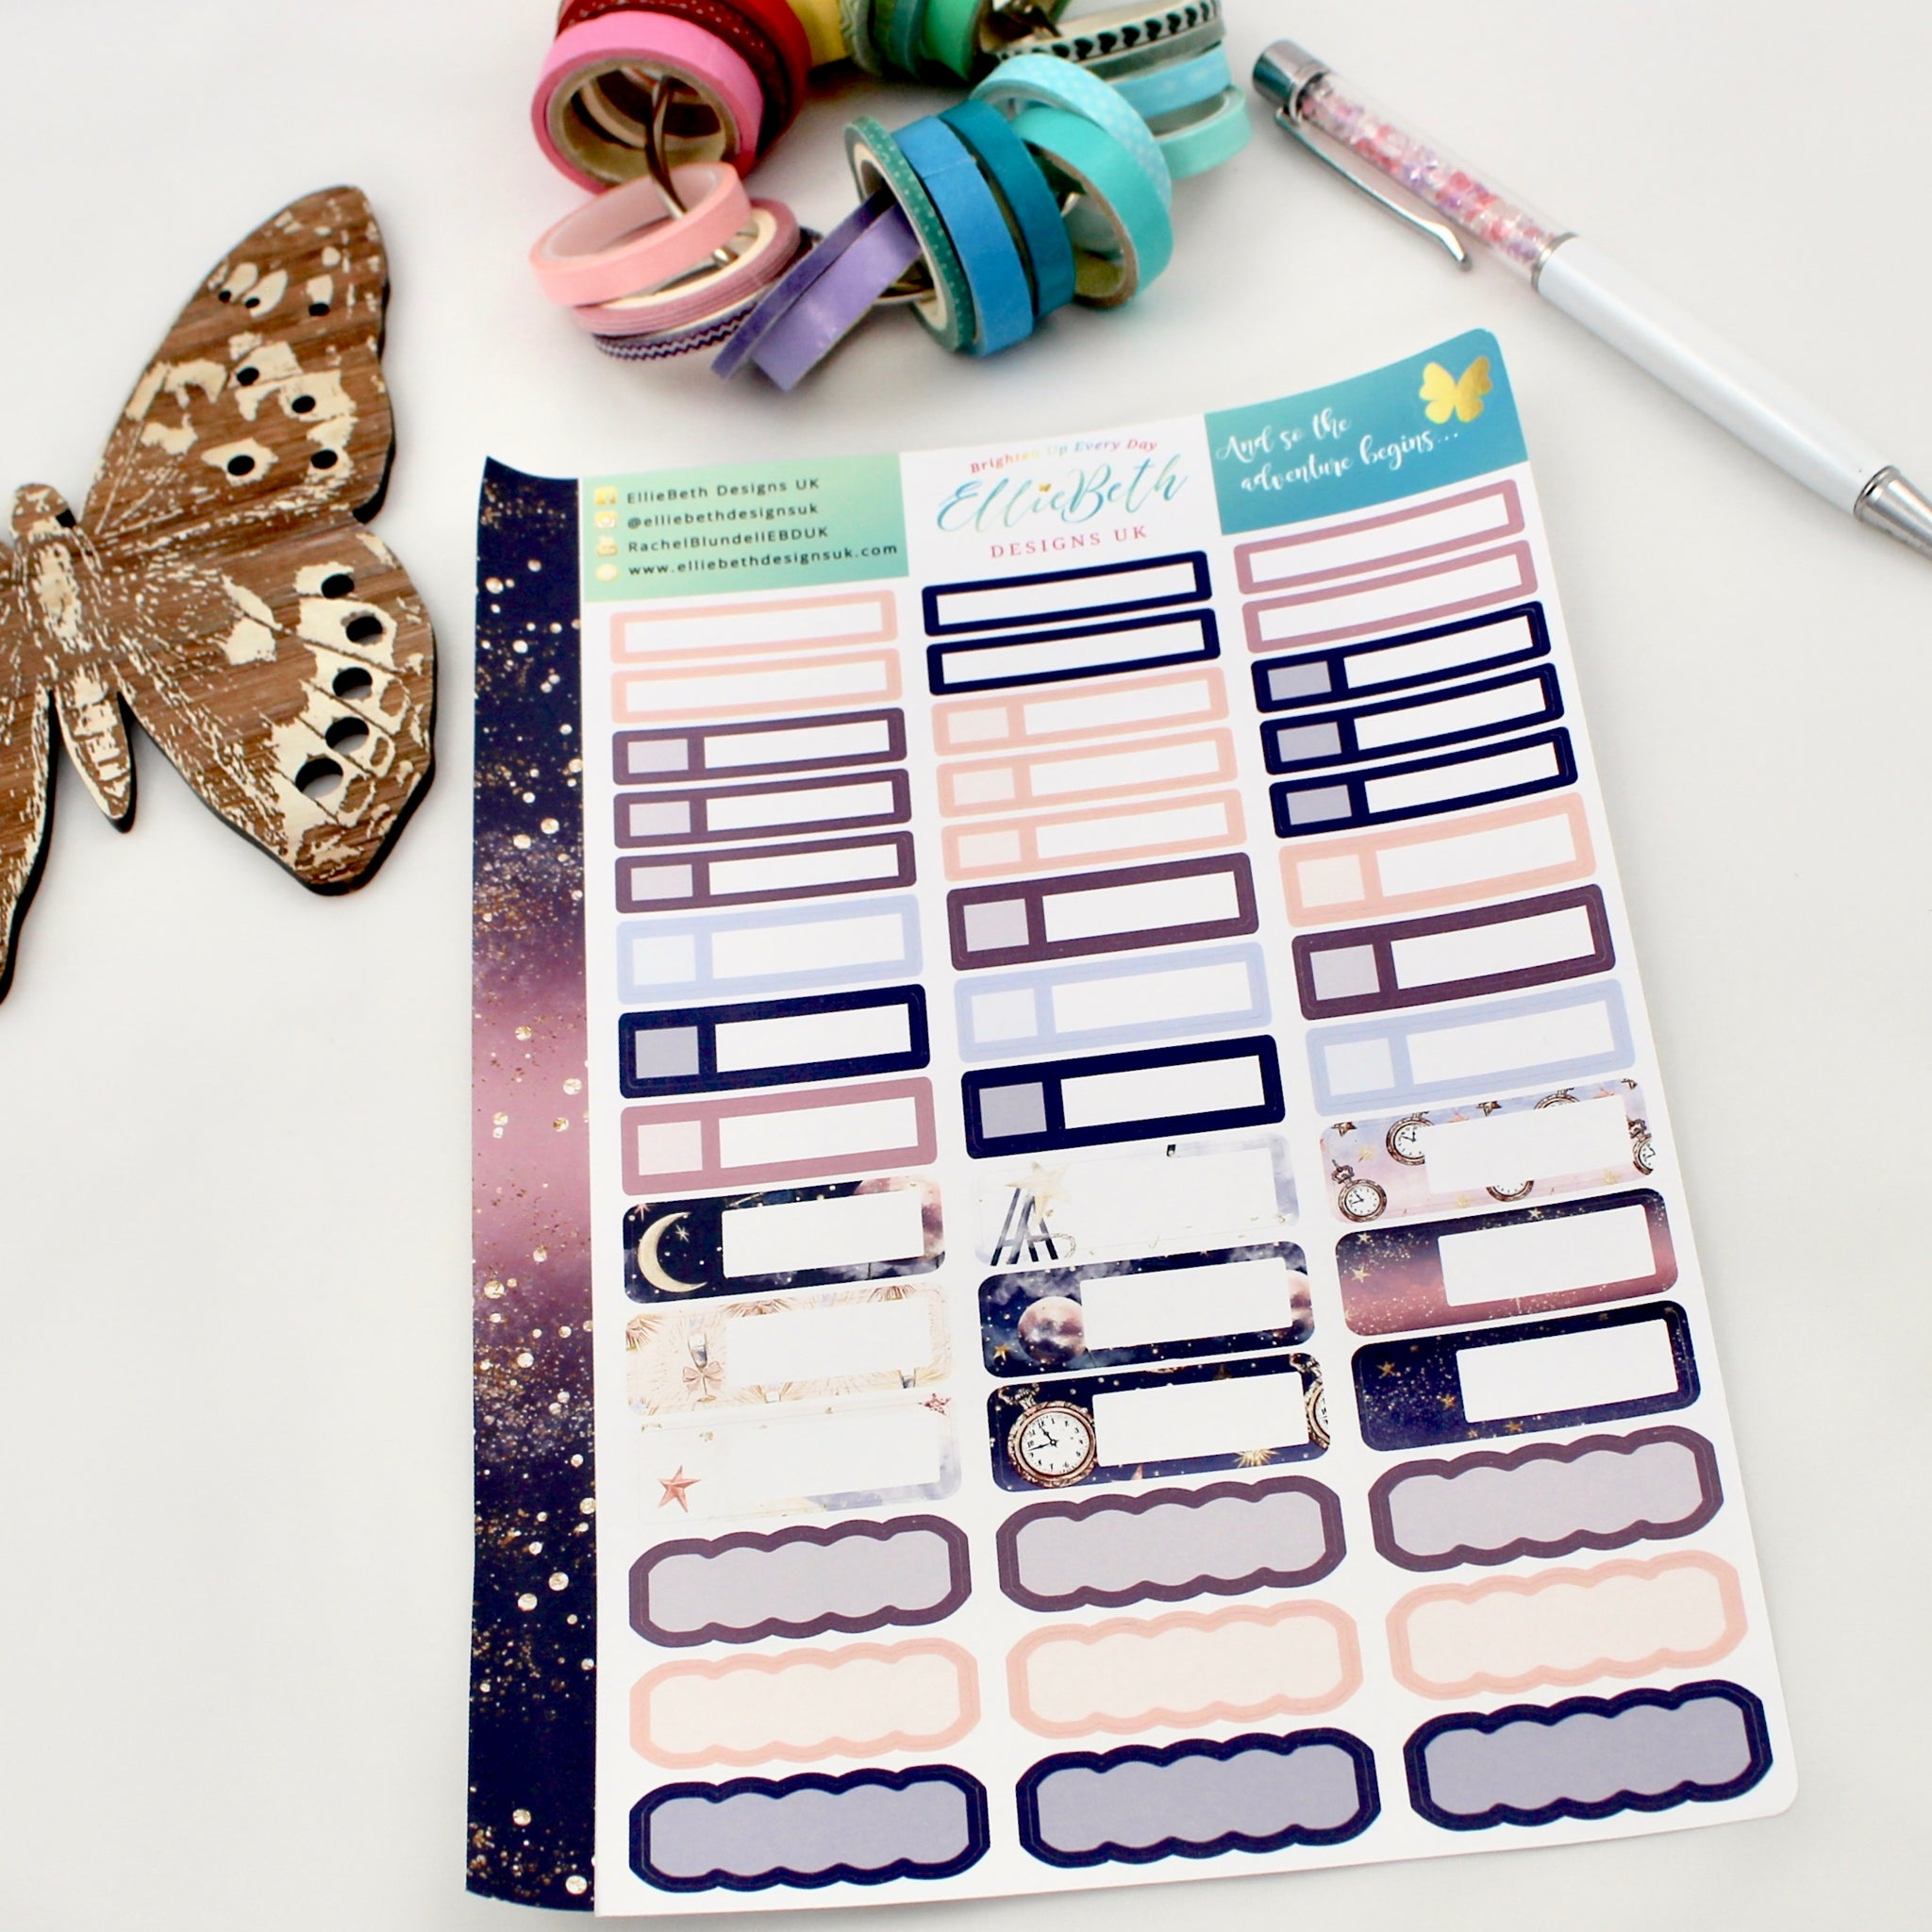 'And so the Adventure Begins' - Mixed Event Labels -  A5 binder ready planner stickers